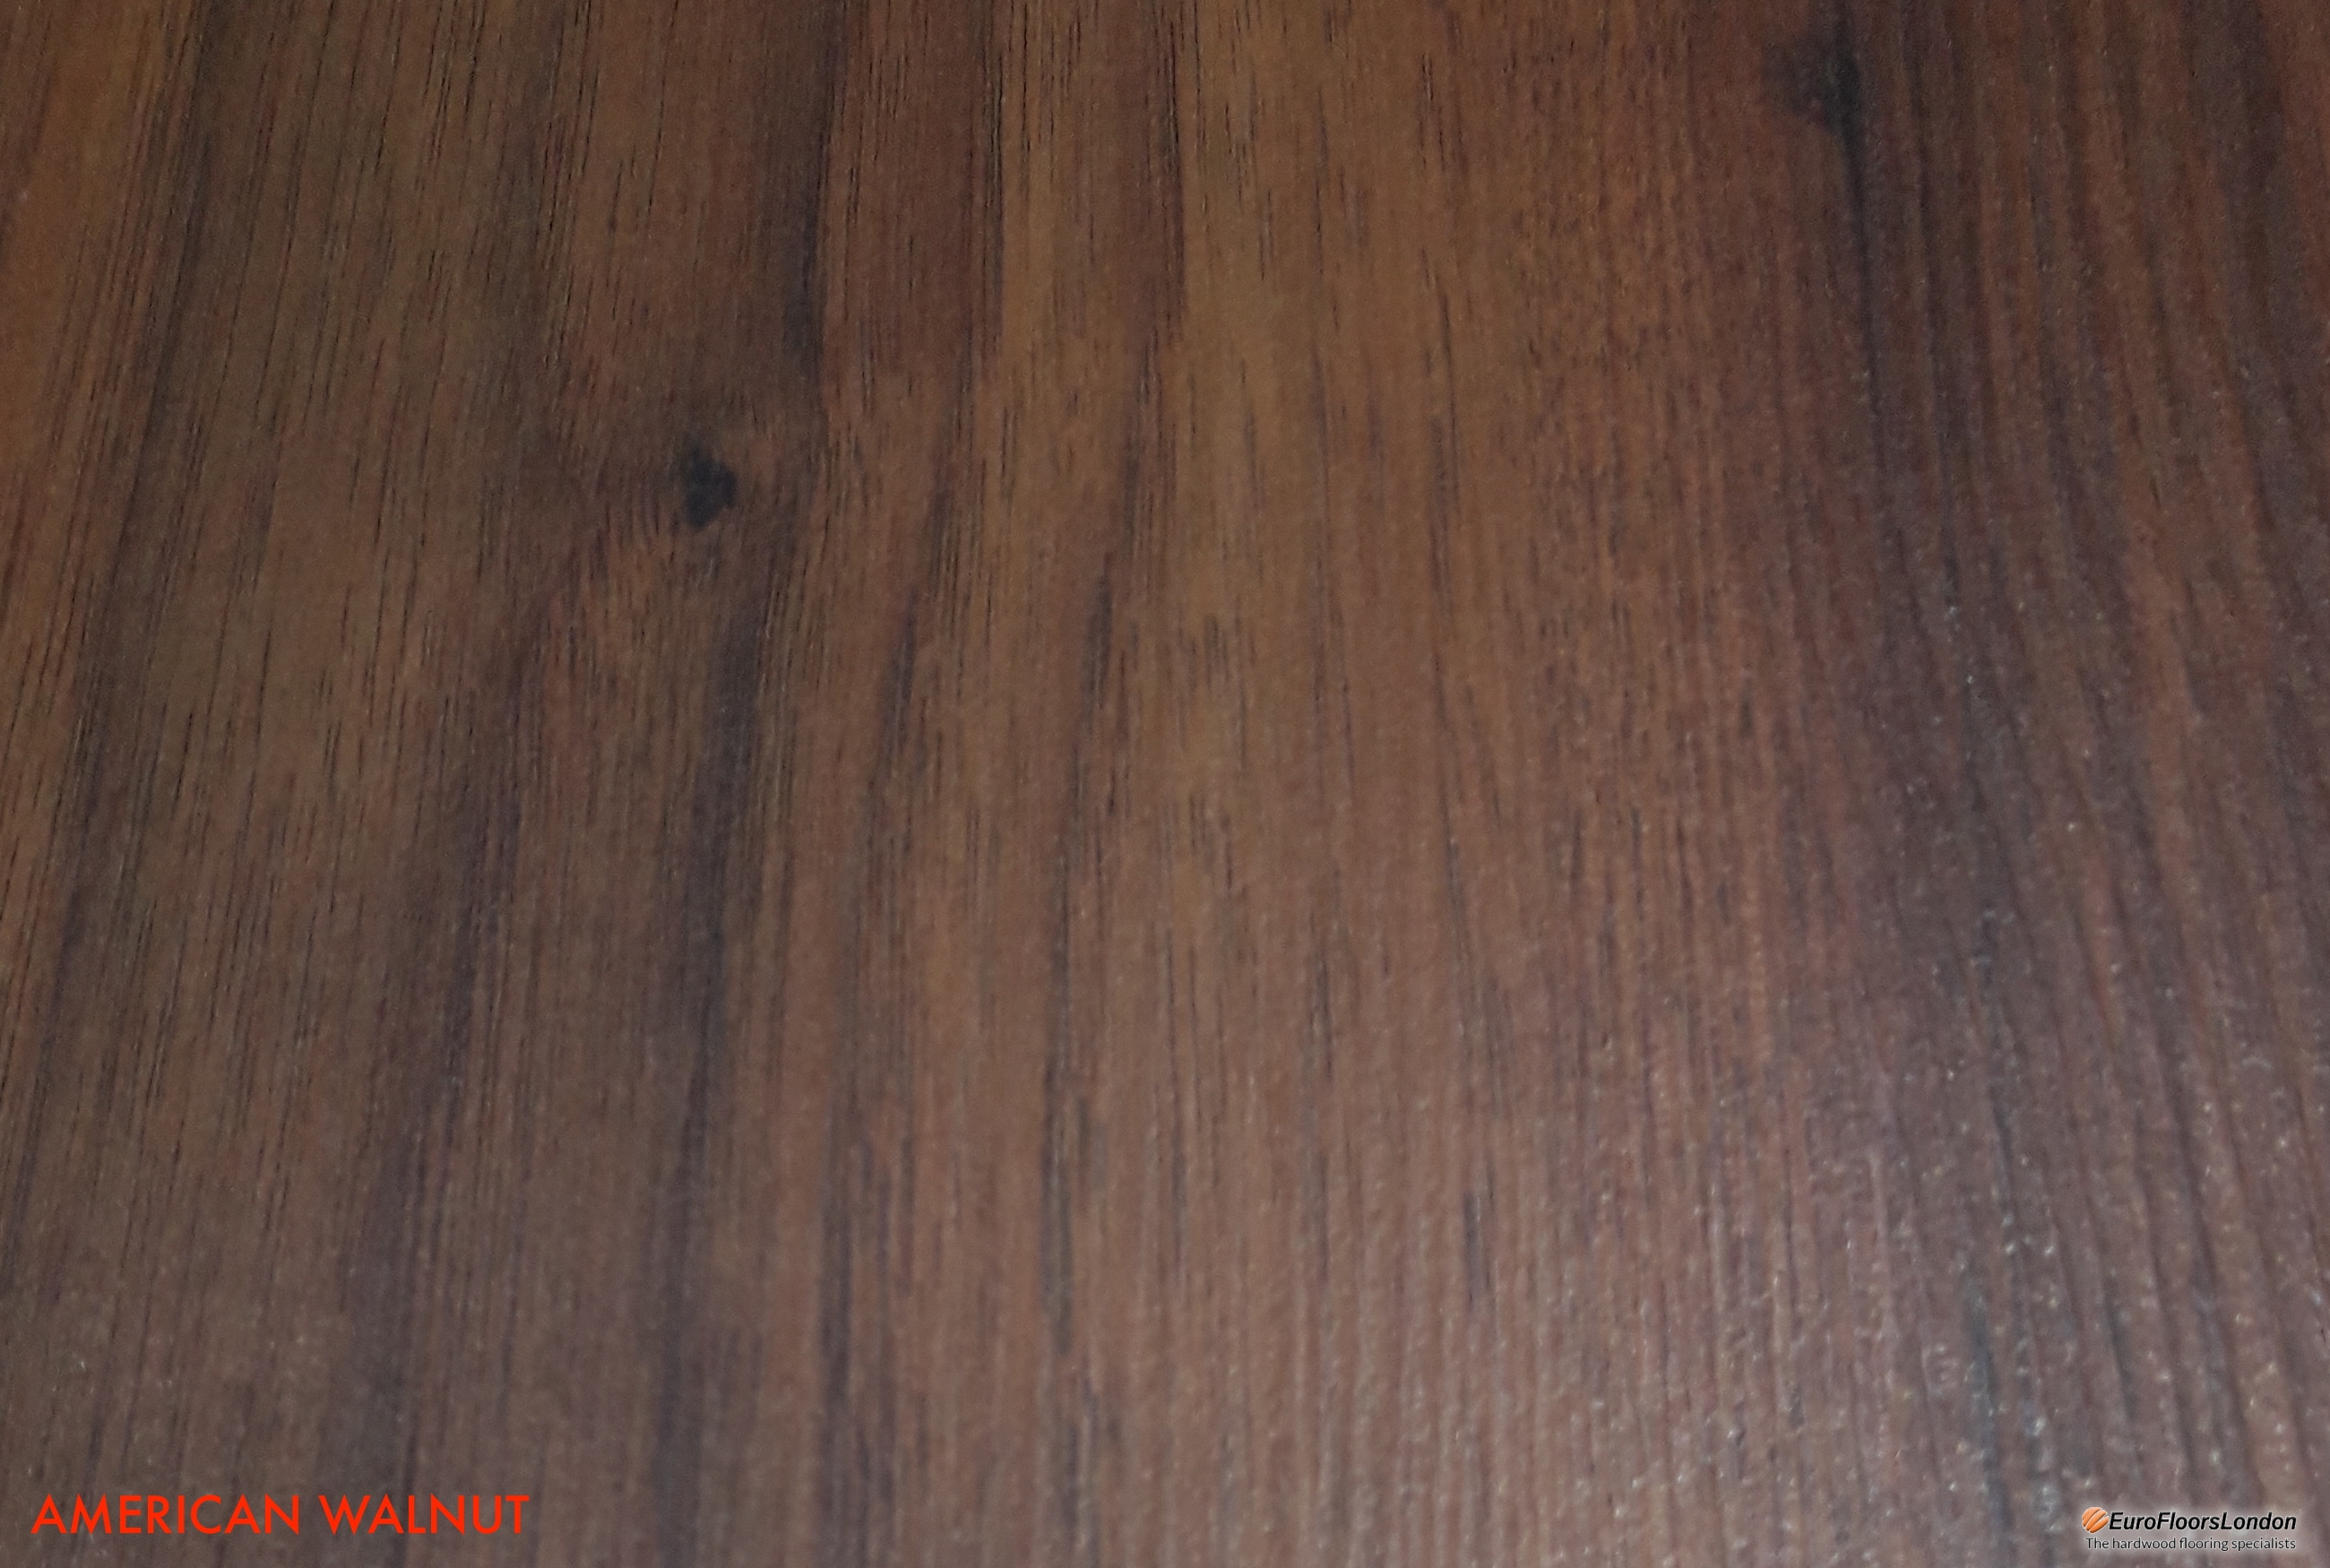 Premium Laminate Flooring plank. coloured to look as wood floors.